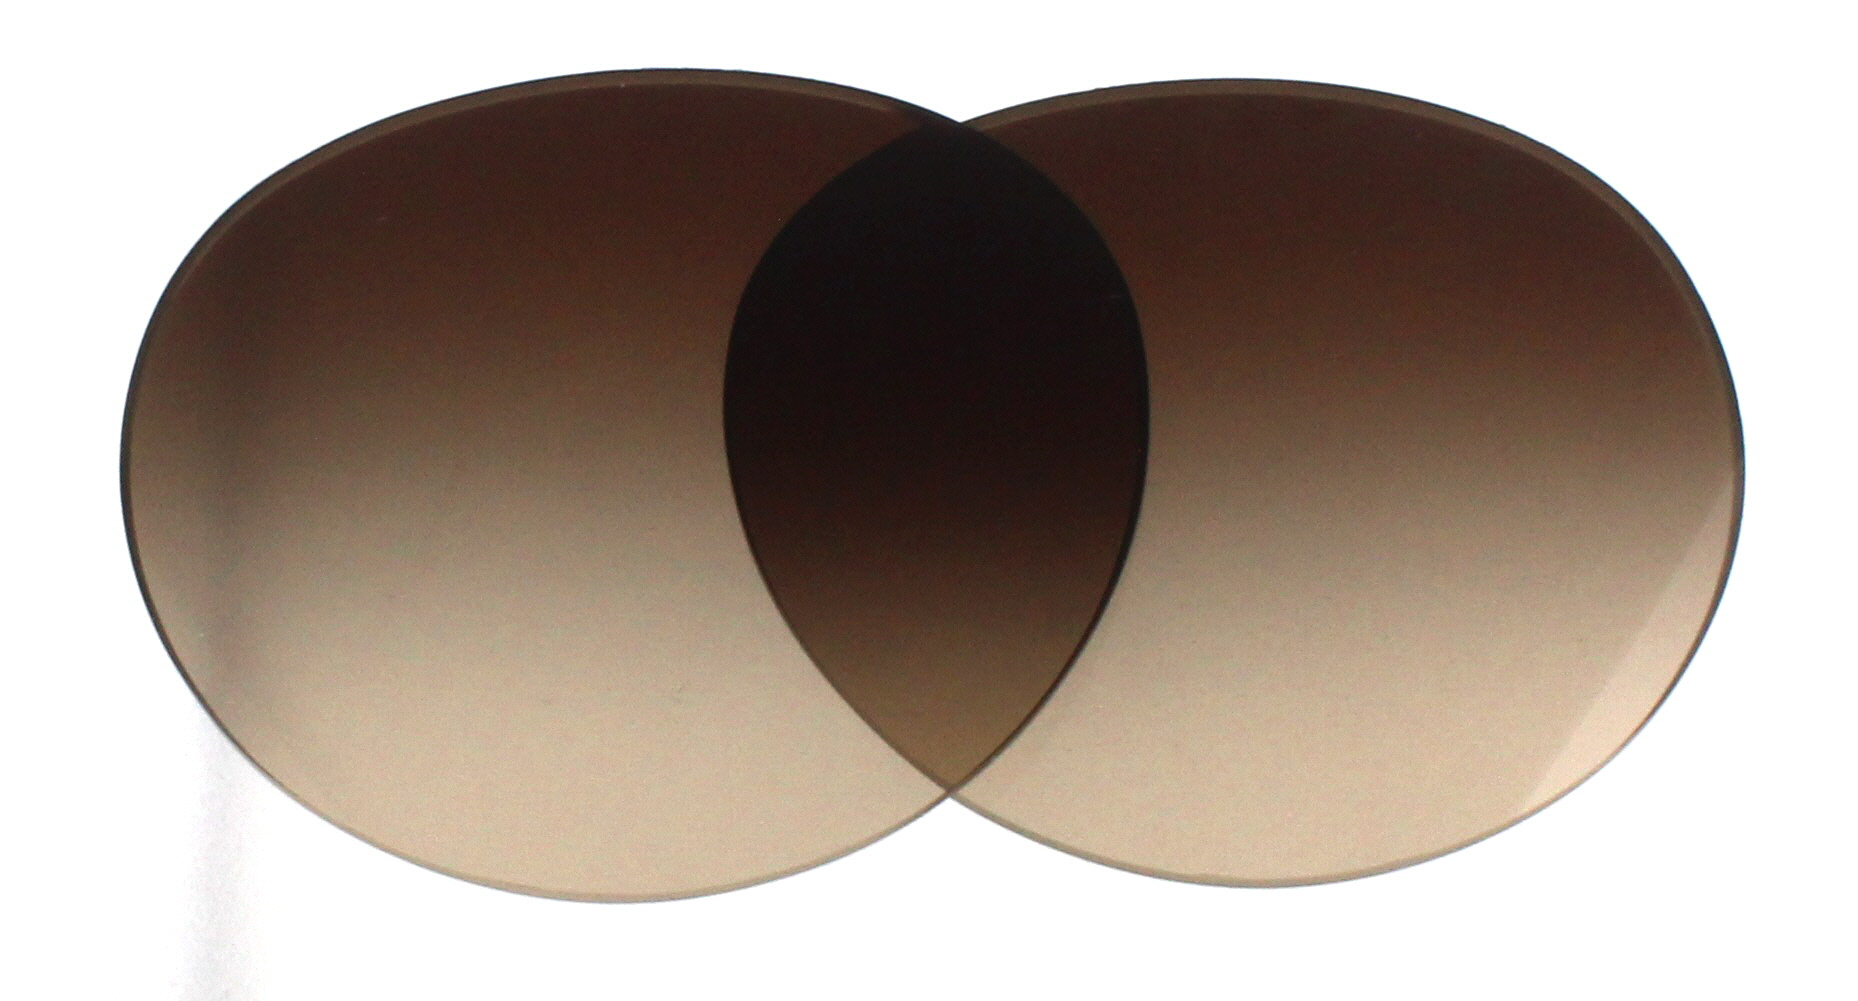 Fuse Lenses Non-Polarized Replacement Lenses for Tory Burch TY7106